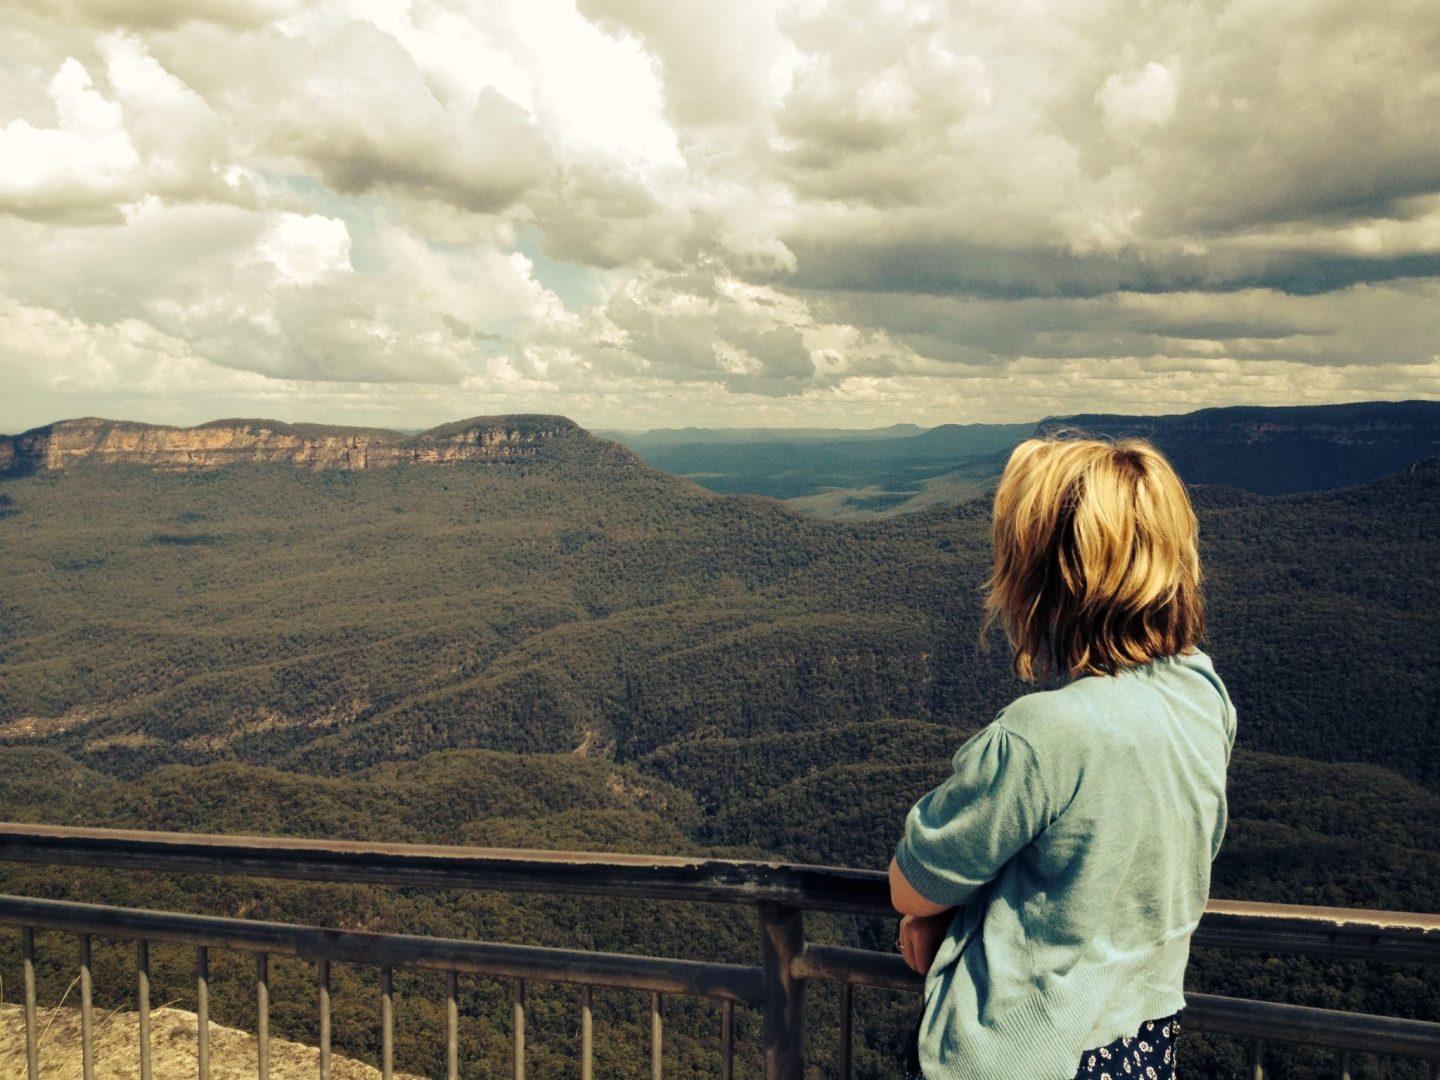 Laura taking in the view of the Blue Mountains